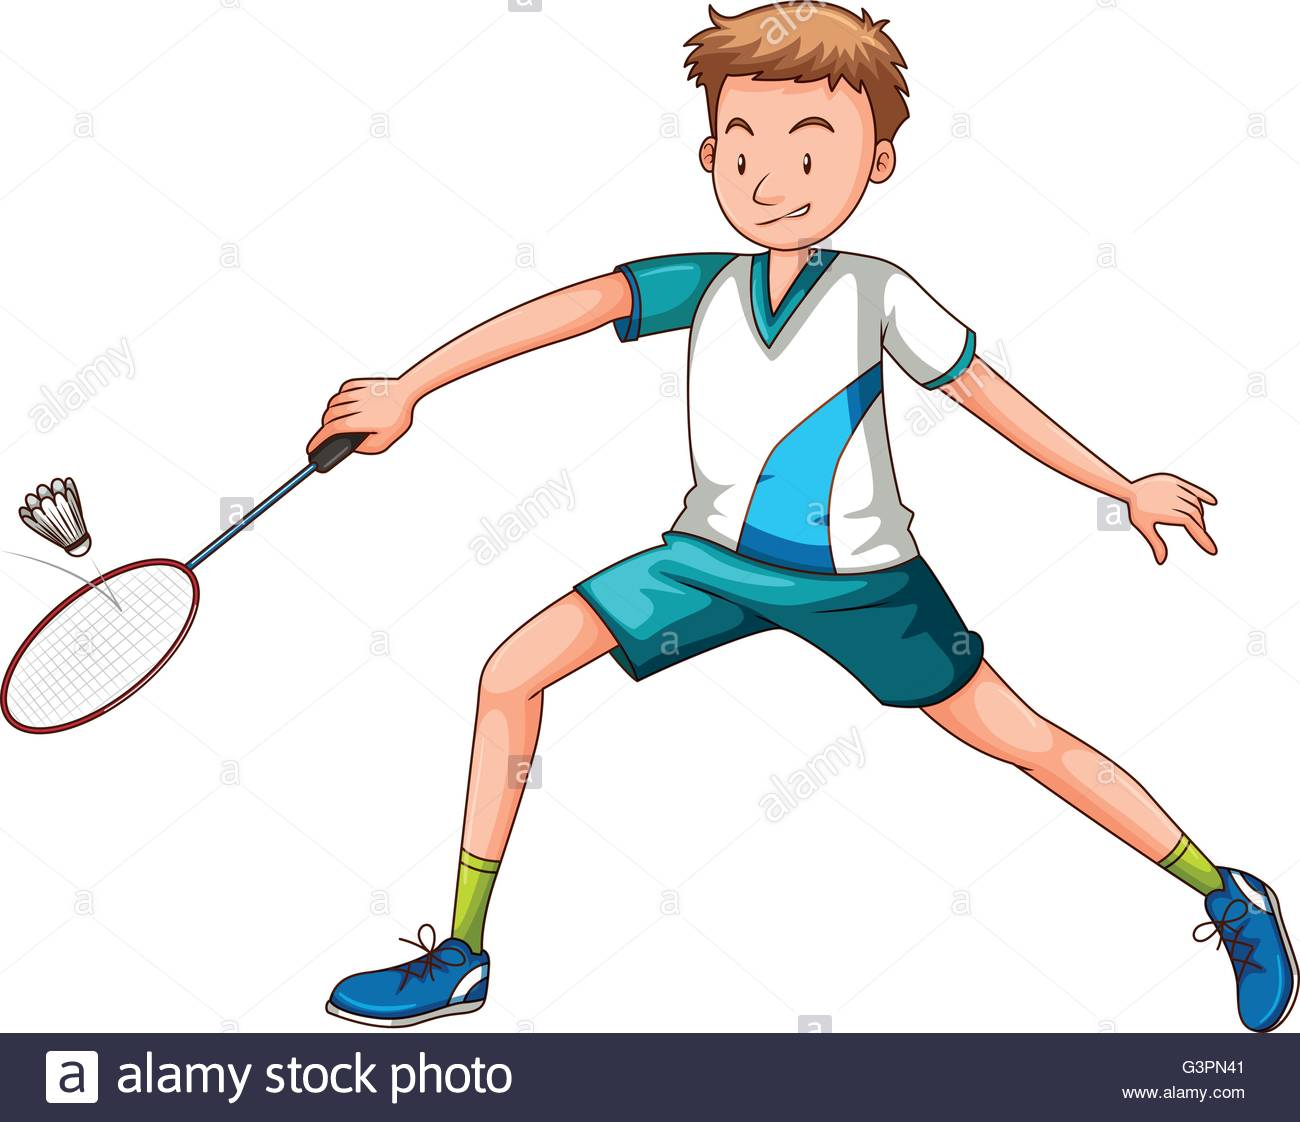 Racket clipart men's. Man playing badminton with clip art black and white